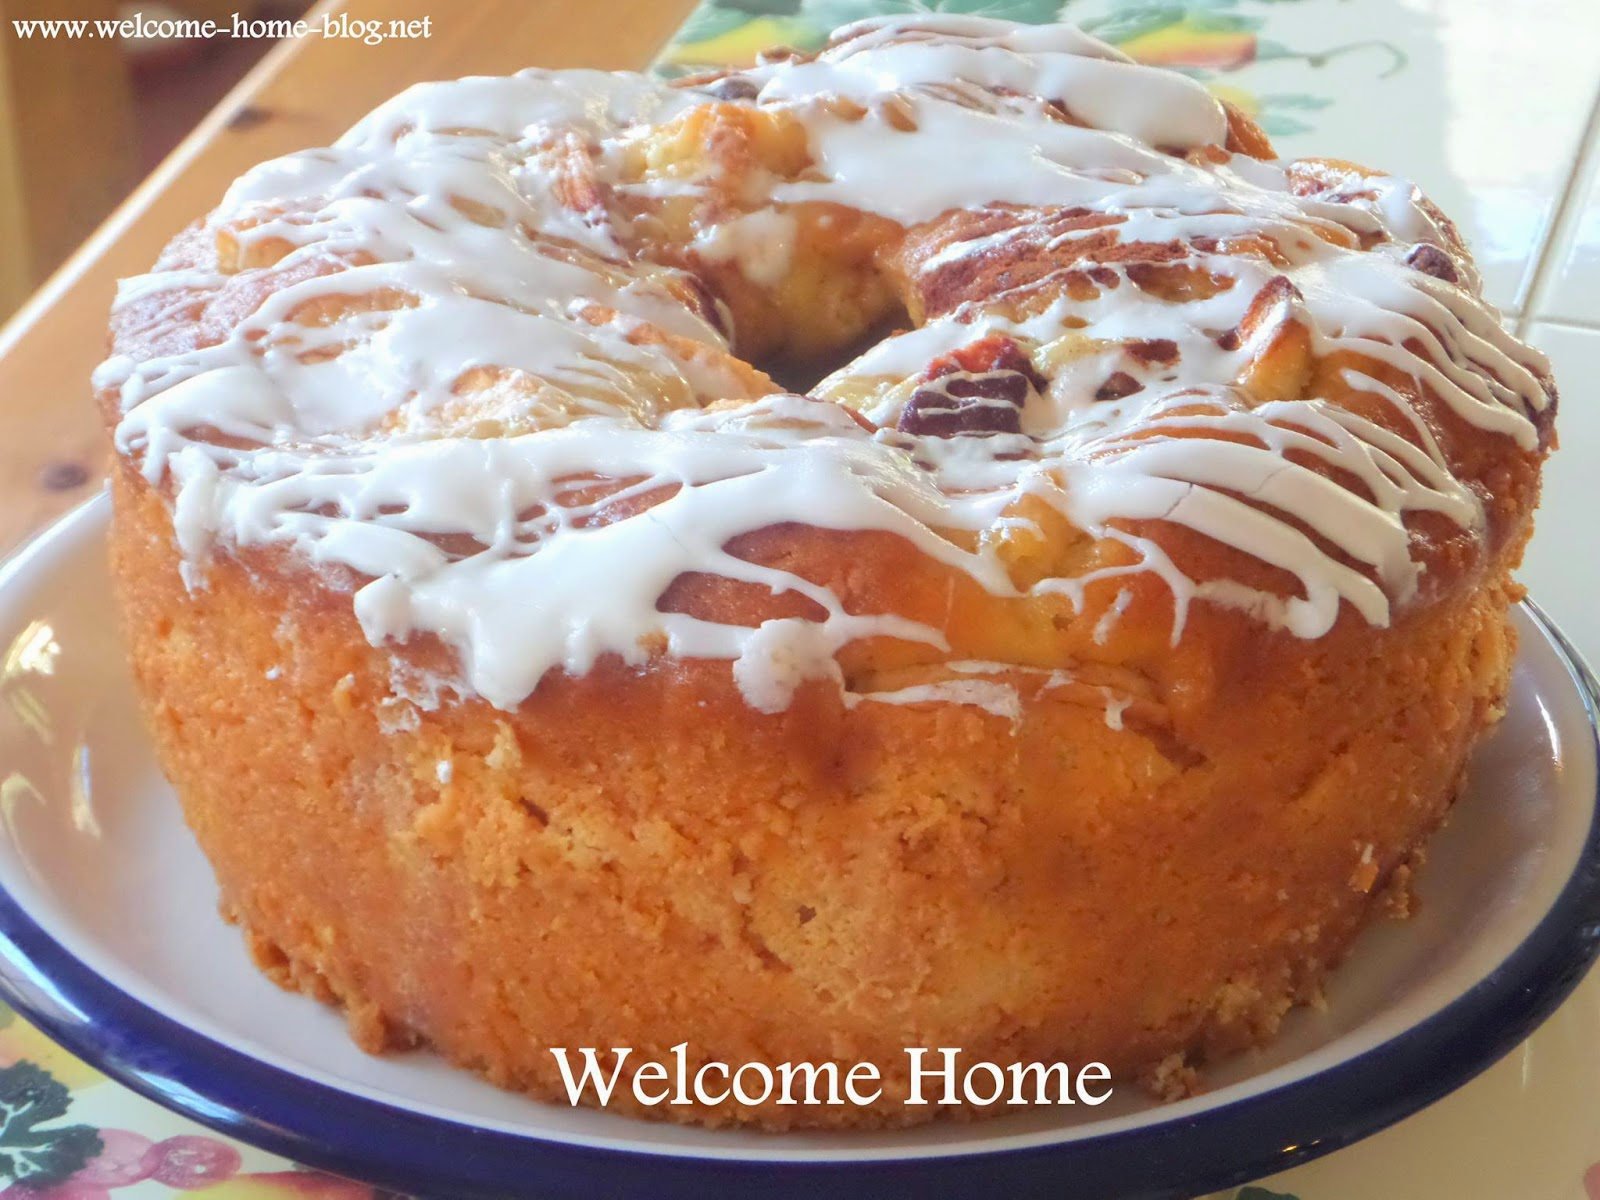 Welcome Home Blog: Homemade Apple Cake with Vanilla Glaze